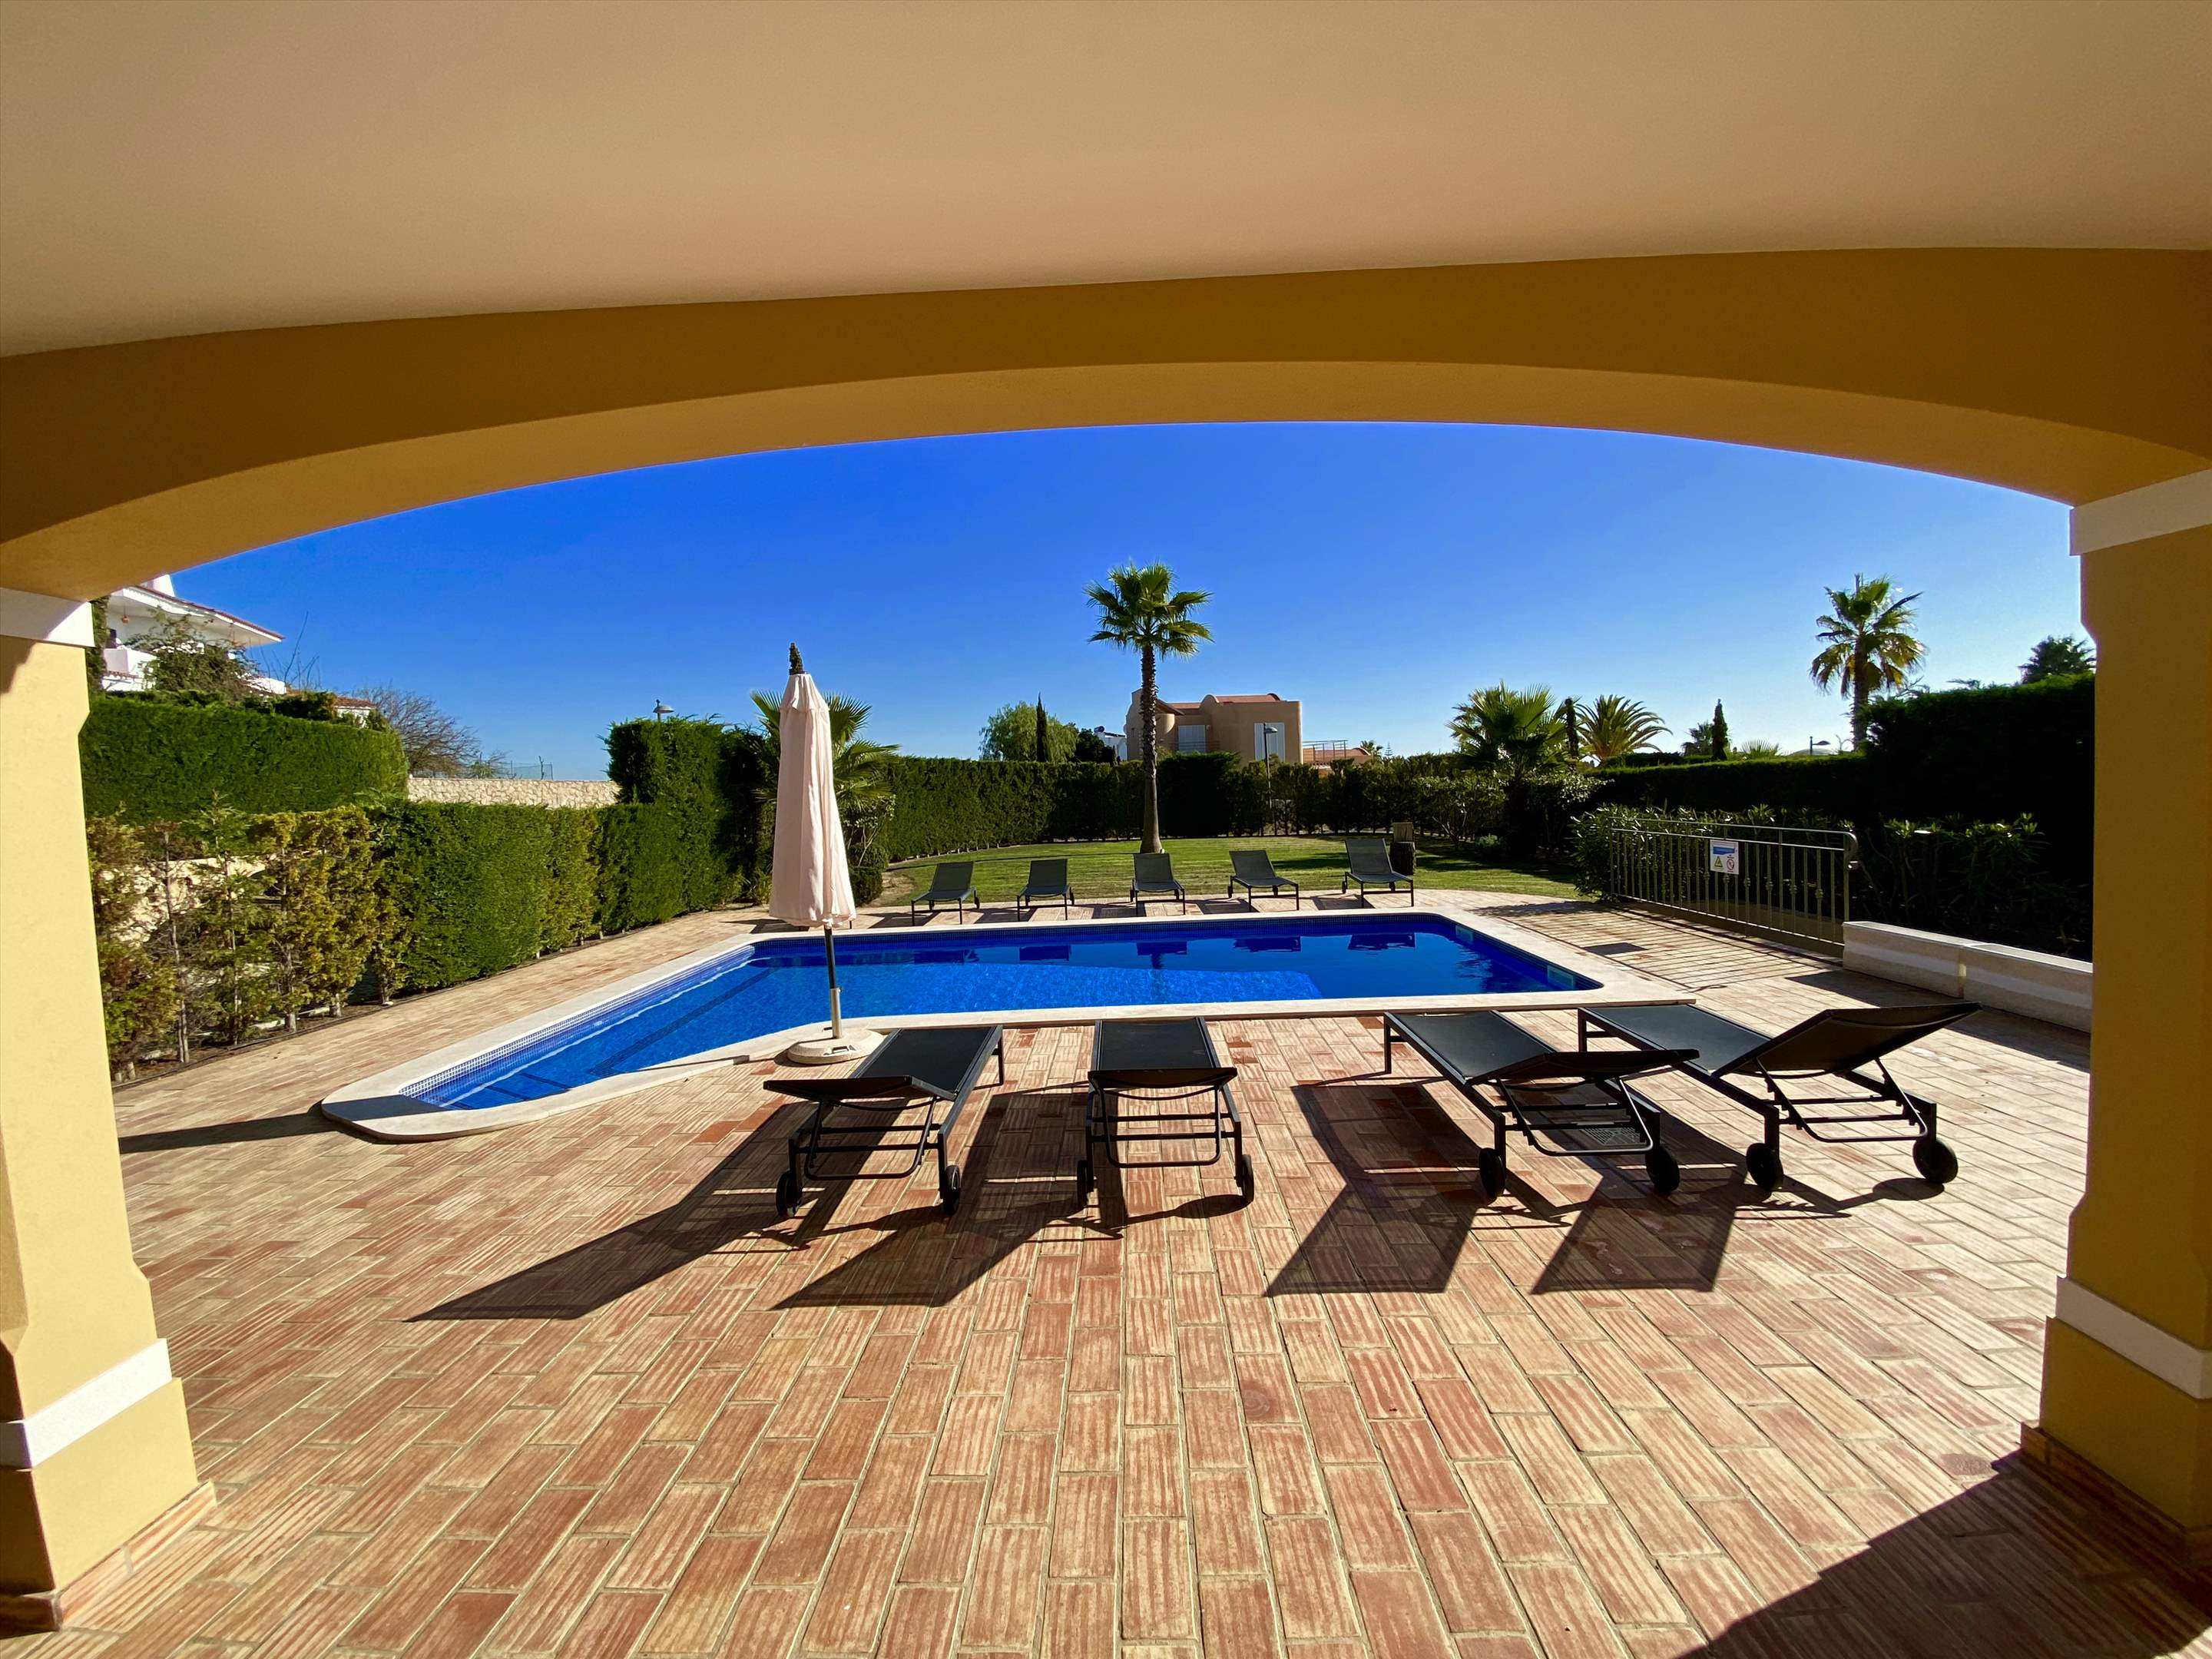 The Ocean Villas, 5 bedroom villa in Gale, Vale da Parra and Guia, Algarve Photo #7